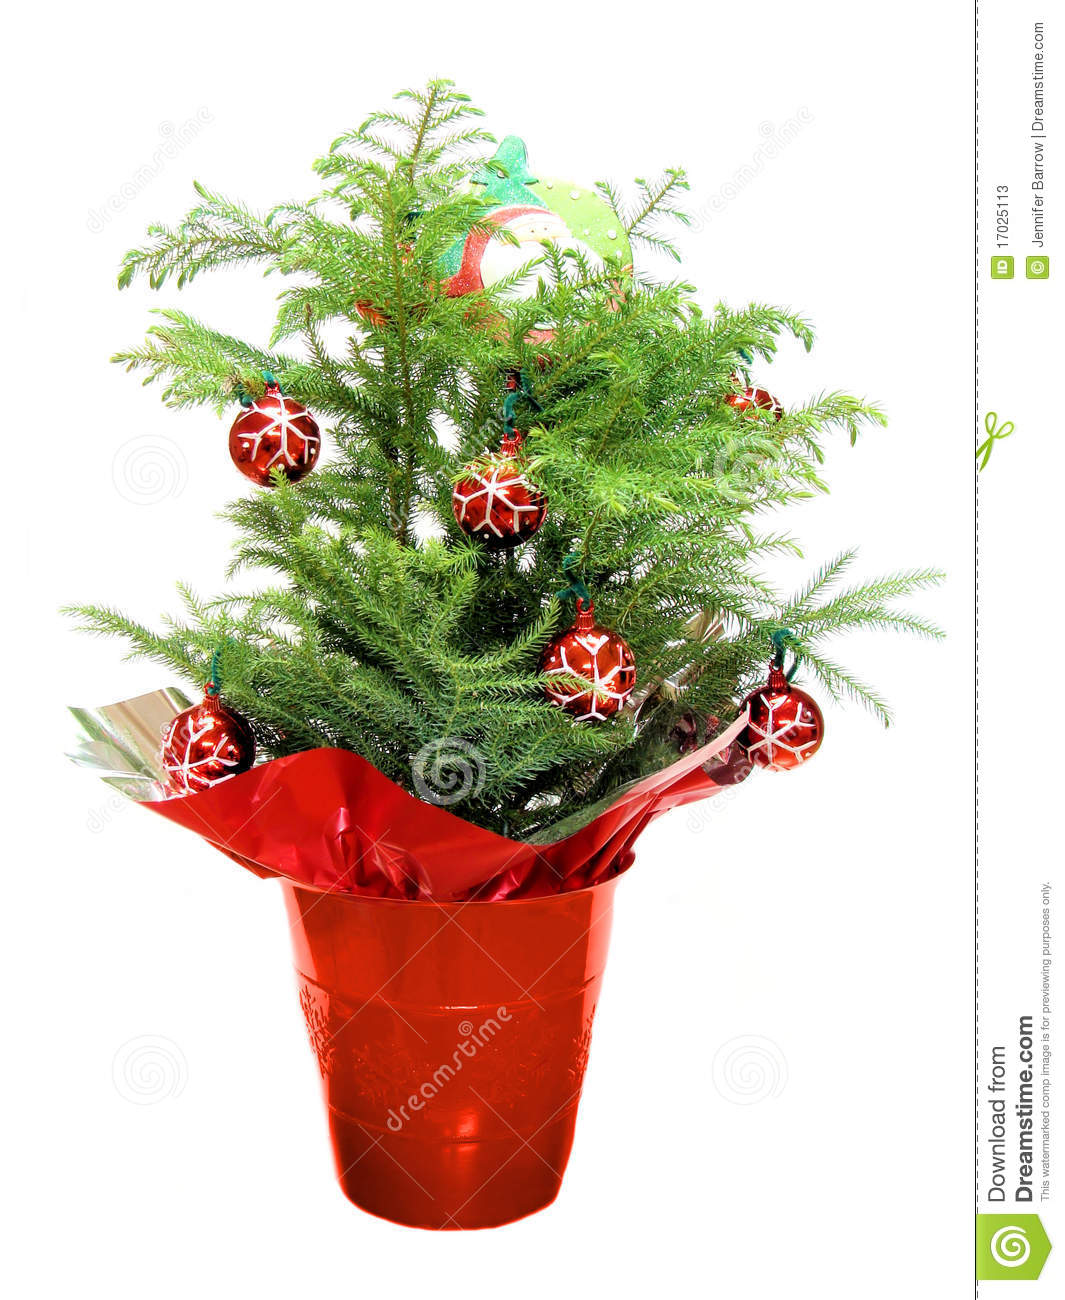 Norfolk pine christmas tree clipart.